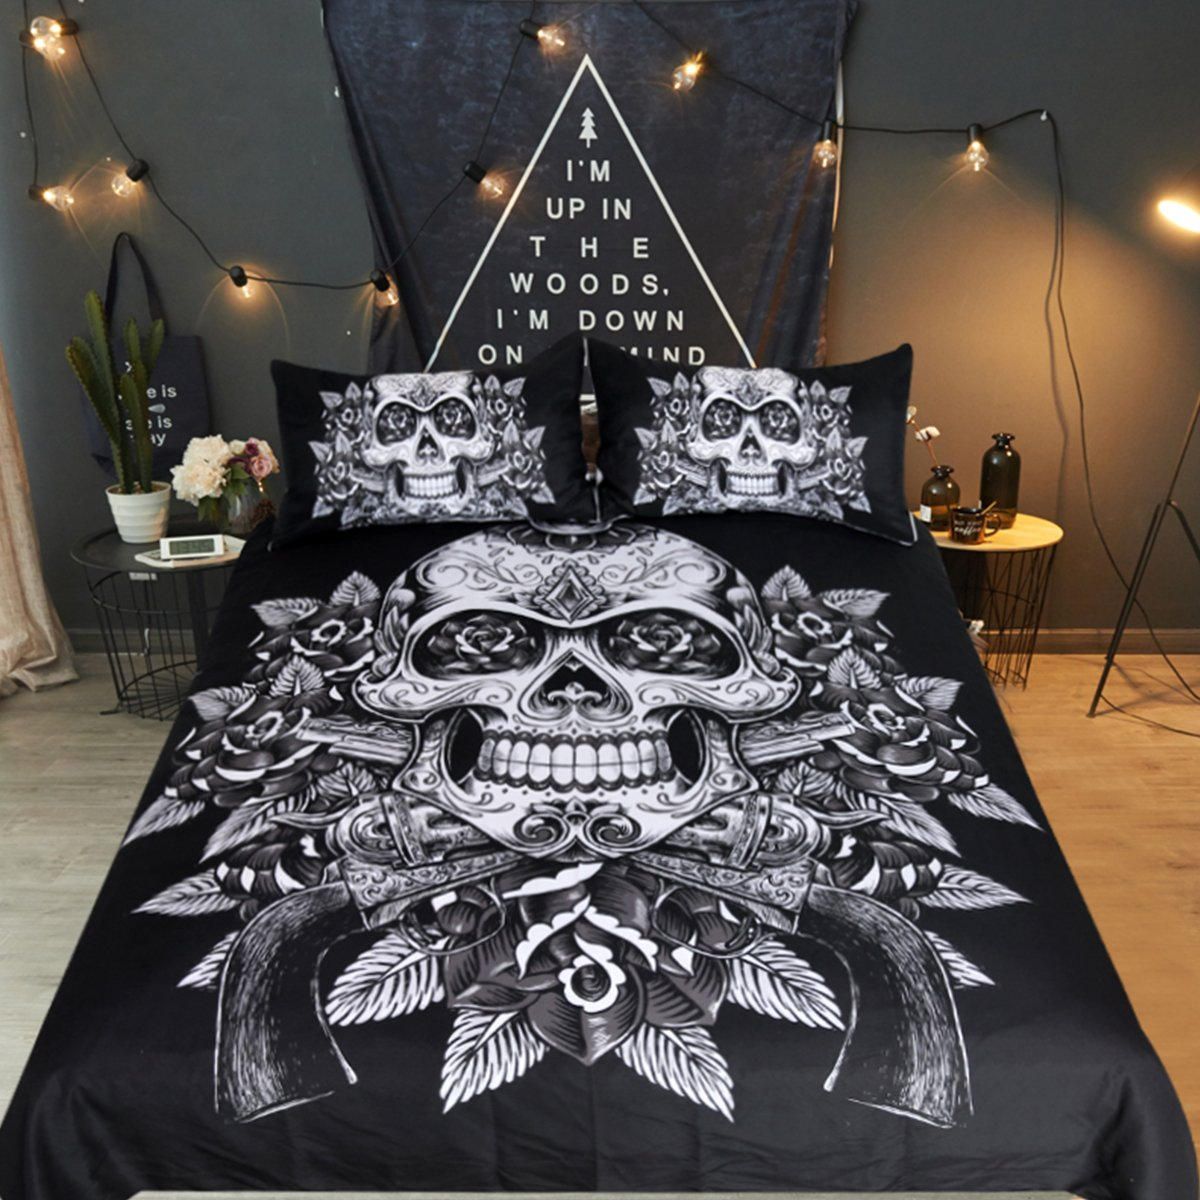 Sleepwish Sugar Skull Bedding Guns and Roses Funny Skull Duvet Cover Set 3 Piece Skeleton Flower Goth Bed Cover (Queen, Black and White)